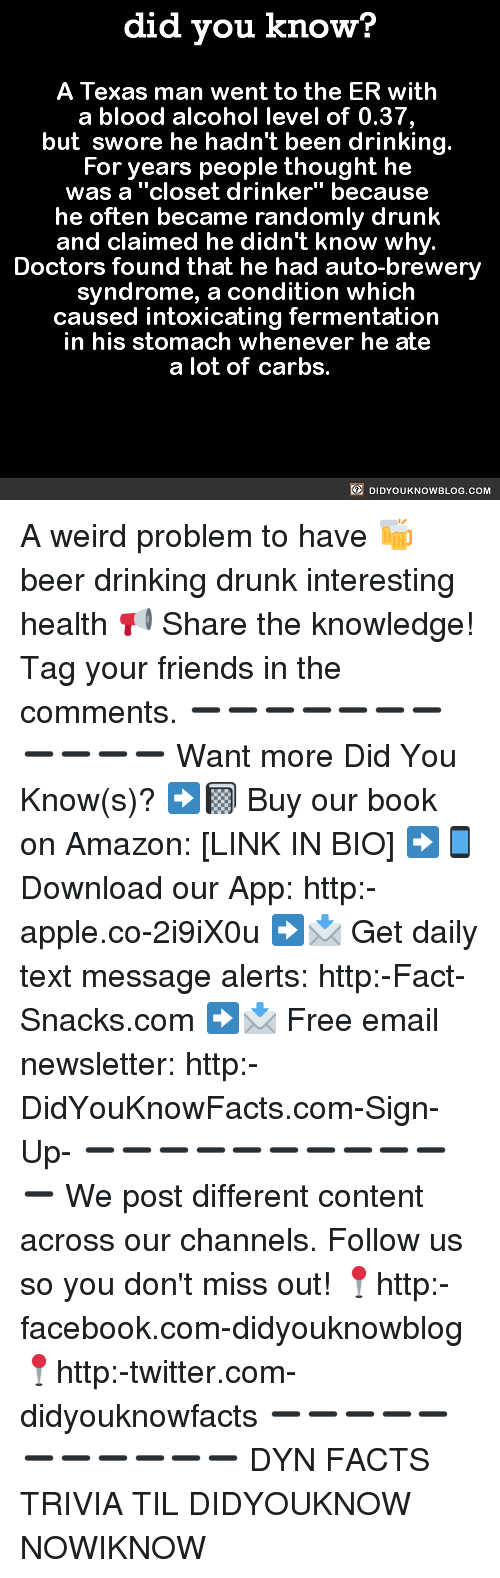 "Amazon, Apple, and Beer: did you know?  A Texas man went to the ER with  a blood alcohol level of 0.37,  but swore he hadn't been drinking.  For years people thought he  was a ""closet drinker"" because  he often became randomly drunk  and claimed he didn't know why.  Doctors found that he had auto-brewery  syndrome, a condition which  caused intoxicating fermentation  in his stomach whenever he ate  a lot of carbs.  DIDYOUKNOWBLOG.COM A weird problem to have 🍻 beer drinking drunk interesting health 📢 Share the knowledge! Tag your friends in the comments. ➖➖➖➖➖➖➖➖➖➖➖ Want more Did You Know(s)? ➡📓 Buy our book on Amazon: [LINK IN BIO] ➡📱 Download our App: http:-apple.co-2i9iX0u ➡📩 Get daily text message alerts: http:-Fact-Snacks.com ➡📩 Free email newsletter: http:-DidYouKnowFacts.com-Sign-Up- ➖➖➖➖➖➖➖➖➖➖➖ We post different content across our channels. Follow us so you don't miss out! 📍http:-facebook.com-didyouknowblog 📍http:-twitter.com-didyouknowfacts ➖➖➖➖➖➖➖➖➖➖➖ DYN FACTS TRIVIA TIL DIDYOUKNOW NOWIKNOW"